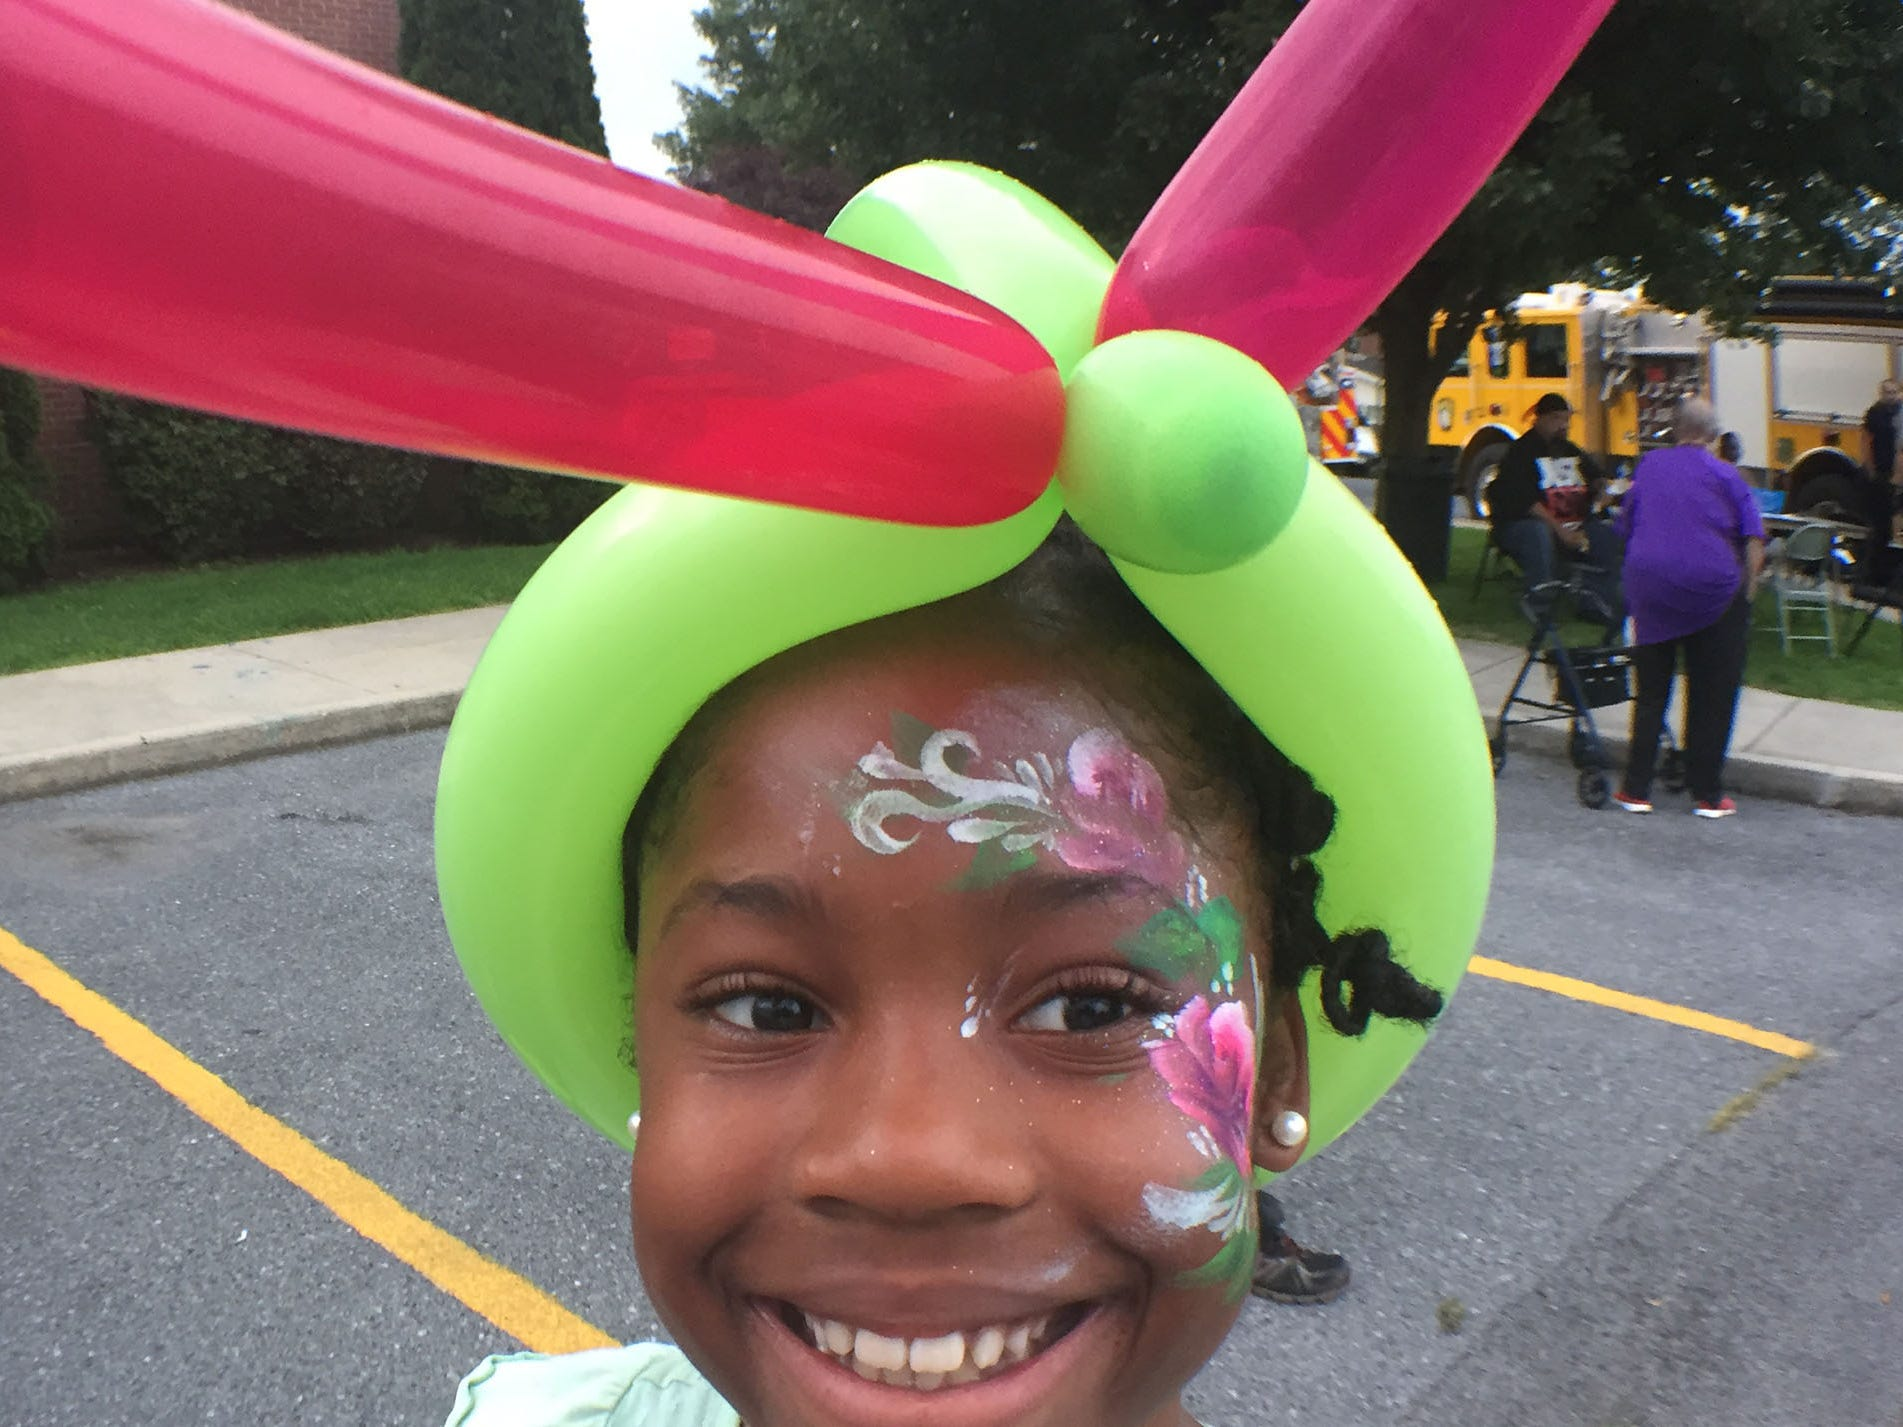 LaNayah Marshall, 9, wears a smile, a balloon hat and face paint during an event. Chambersburg Police Department National Night Out was held Tuesday, August 7, 2018 at the Franklin County Housing Authority complex. The annual event is designed to have community members get a chance to meet first responders.